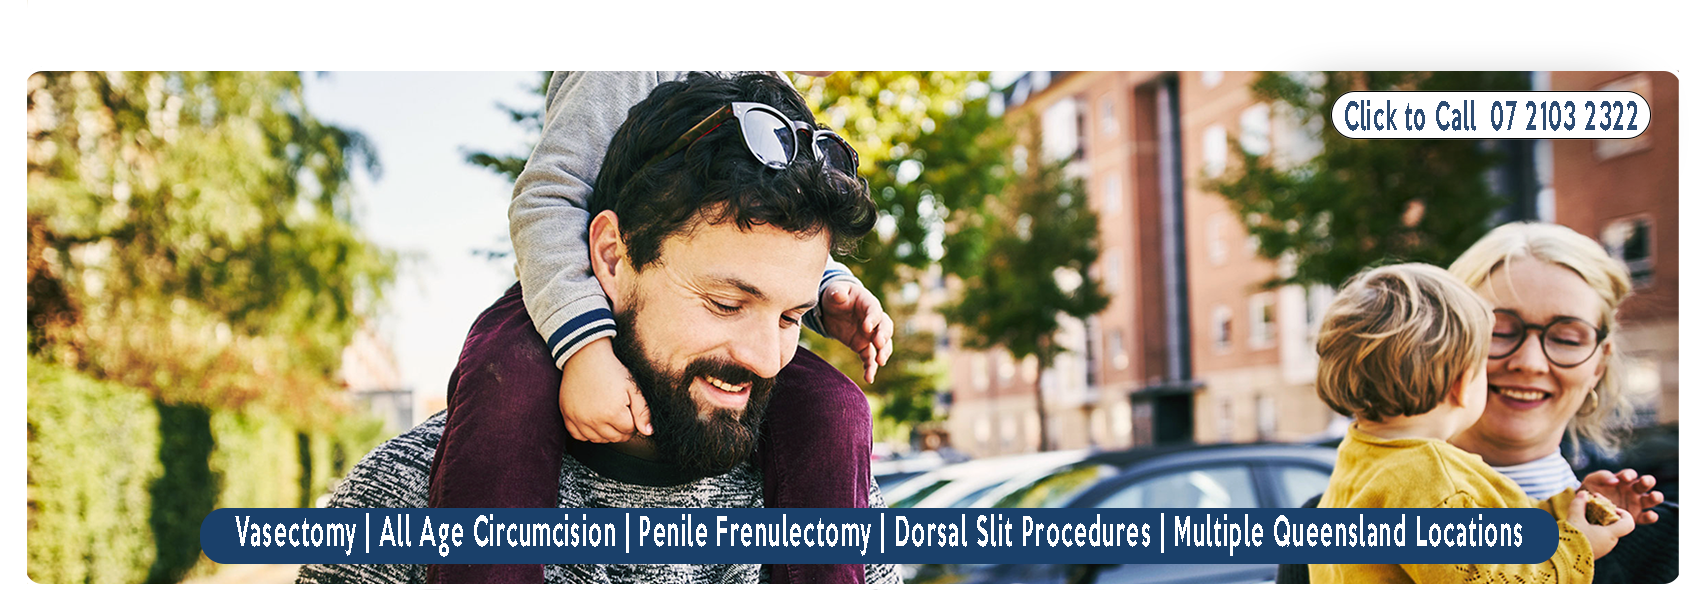 Welcome to Gentle Procedures Clinic Qld   Brisbane, Gold Coast, Toowoomba   Vasectomy, All Age Circumcision, Penile Frenulectomy, Dorsal Slit Procedures